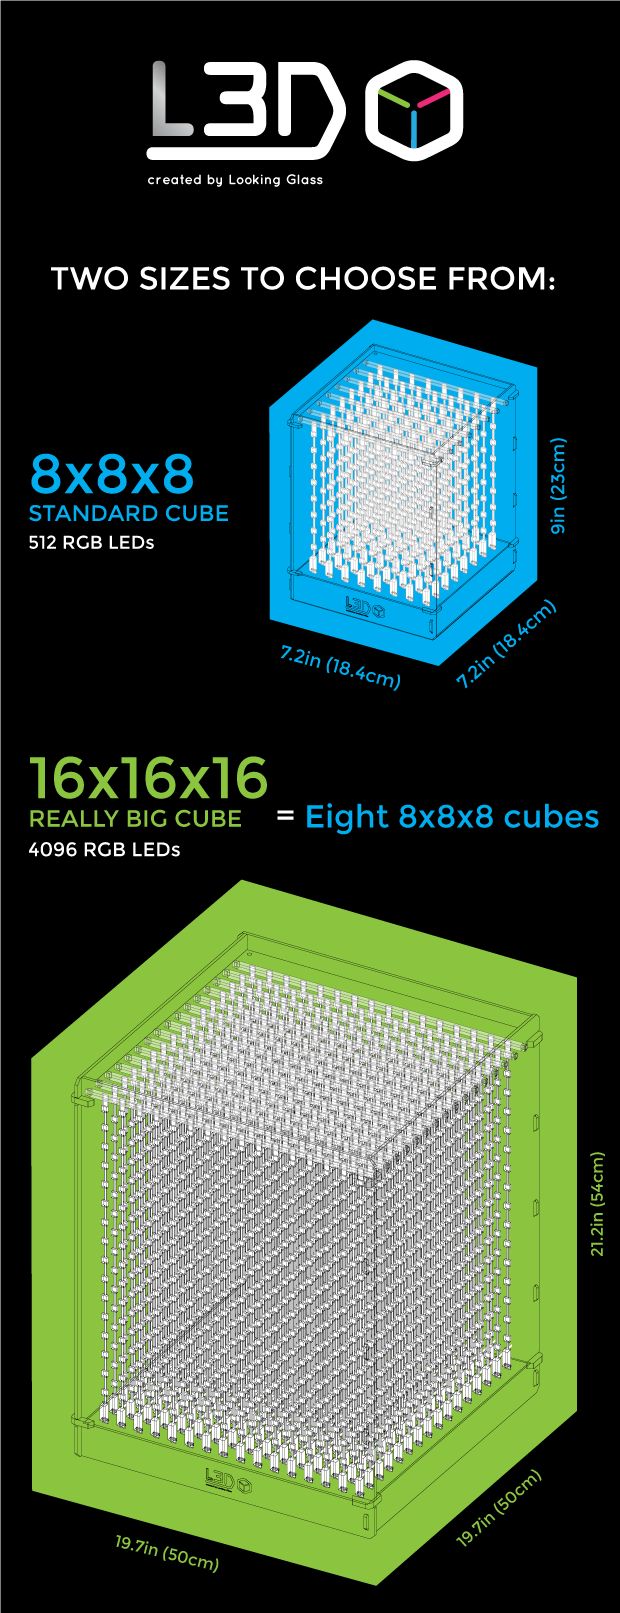 L3D Cube: The 3D LED Cube from the Future by Looking Glass ...